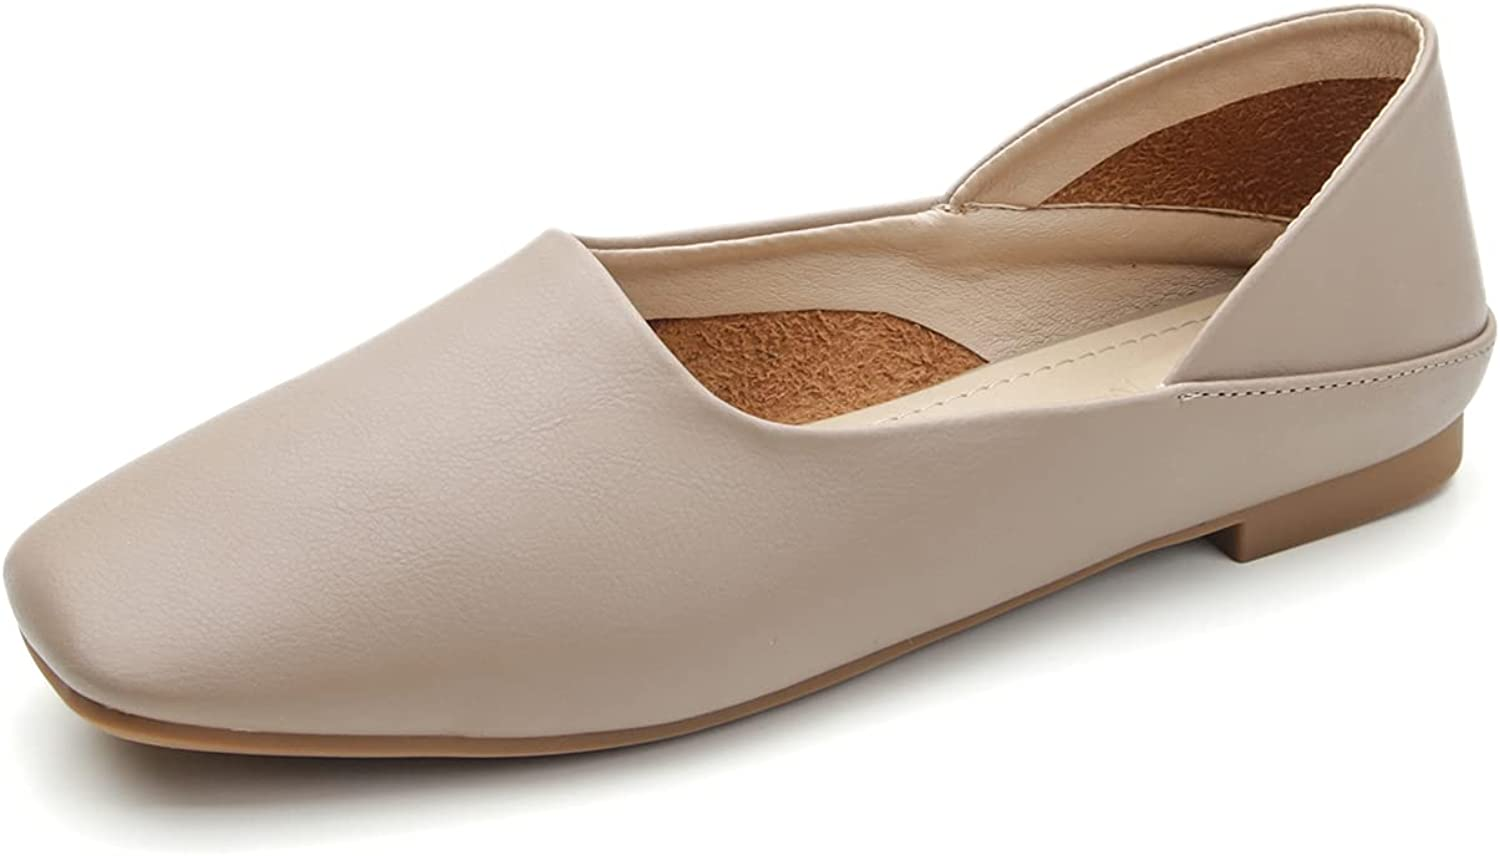 EnllerviiD Women's Flat Casual Comfortable Loafers Square Toe Slip On Leather Shoes